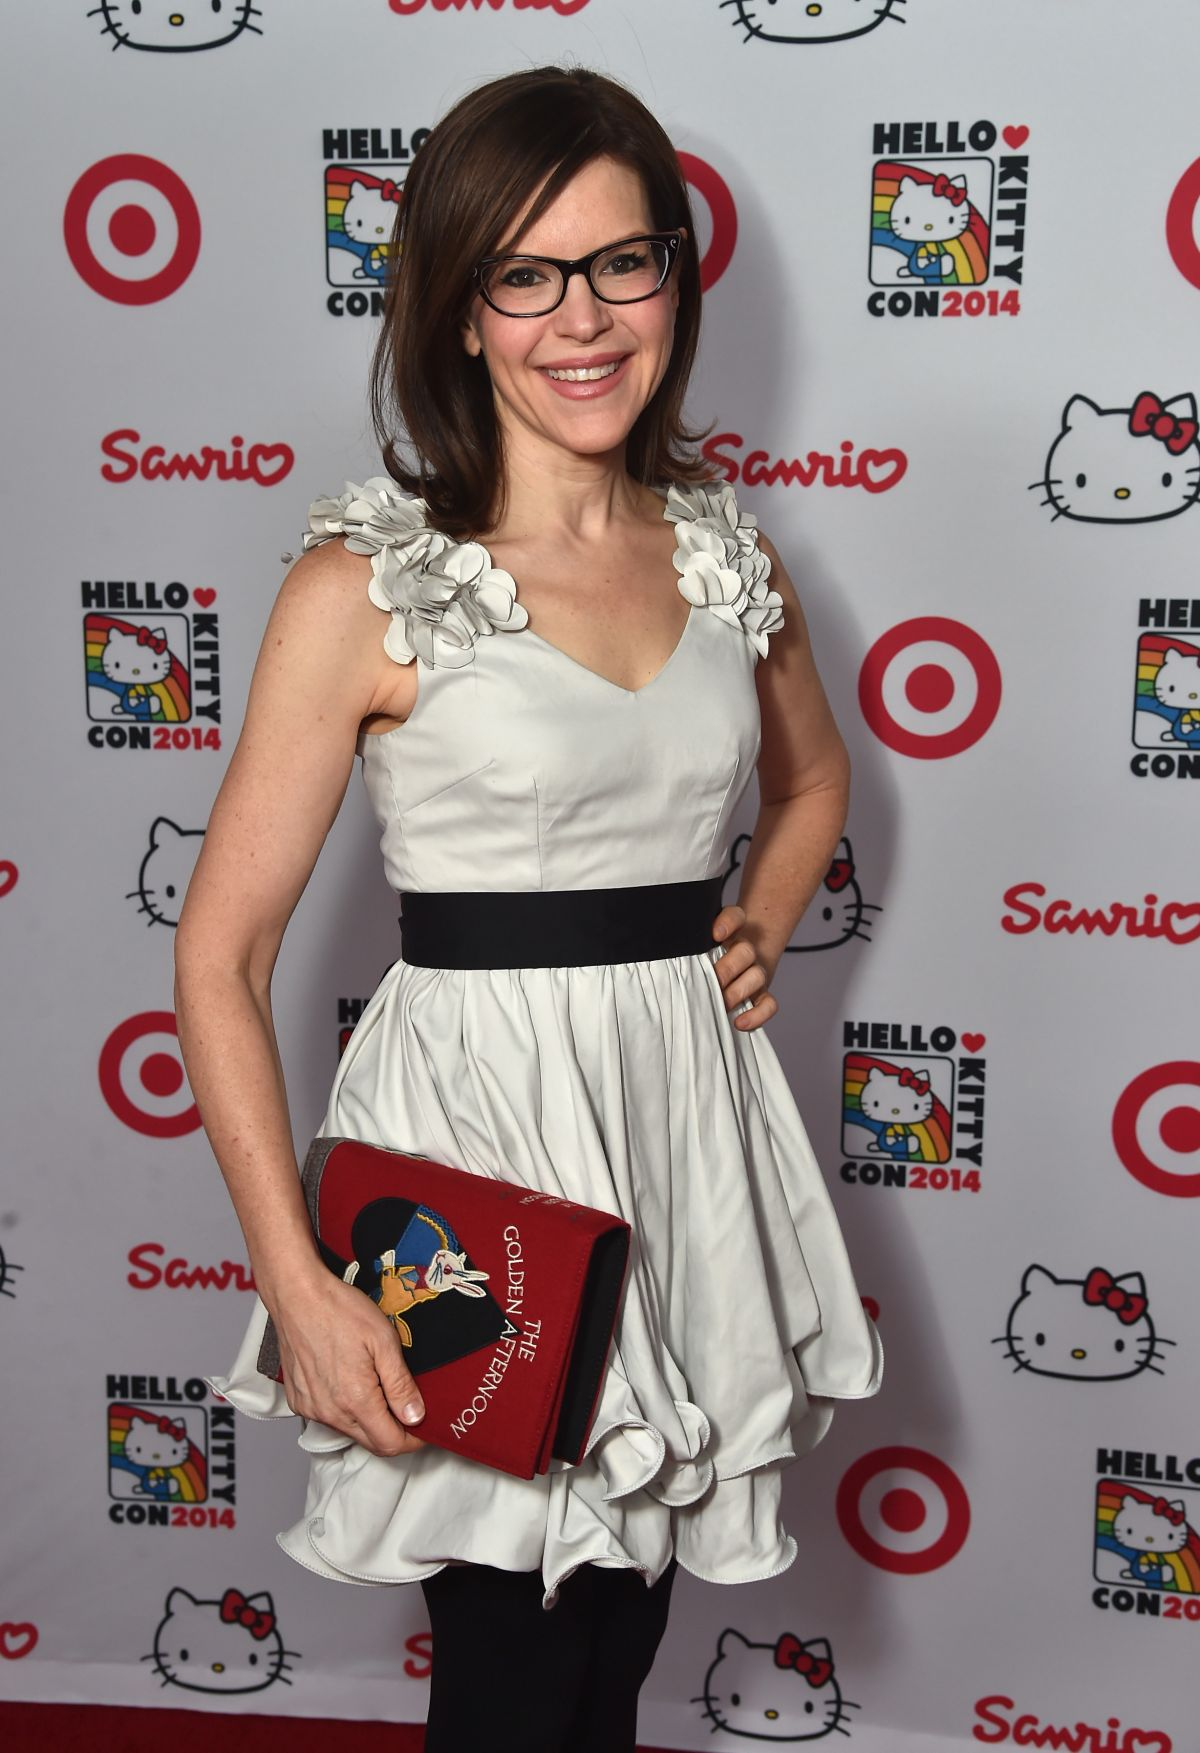 LISA LOEB at Hello Kitty Con 2014 Opening Night Party in Los Angeles